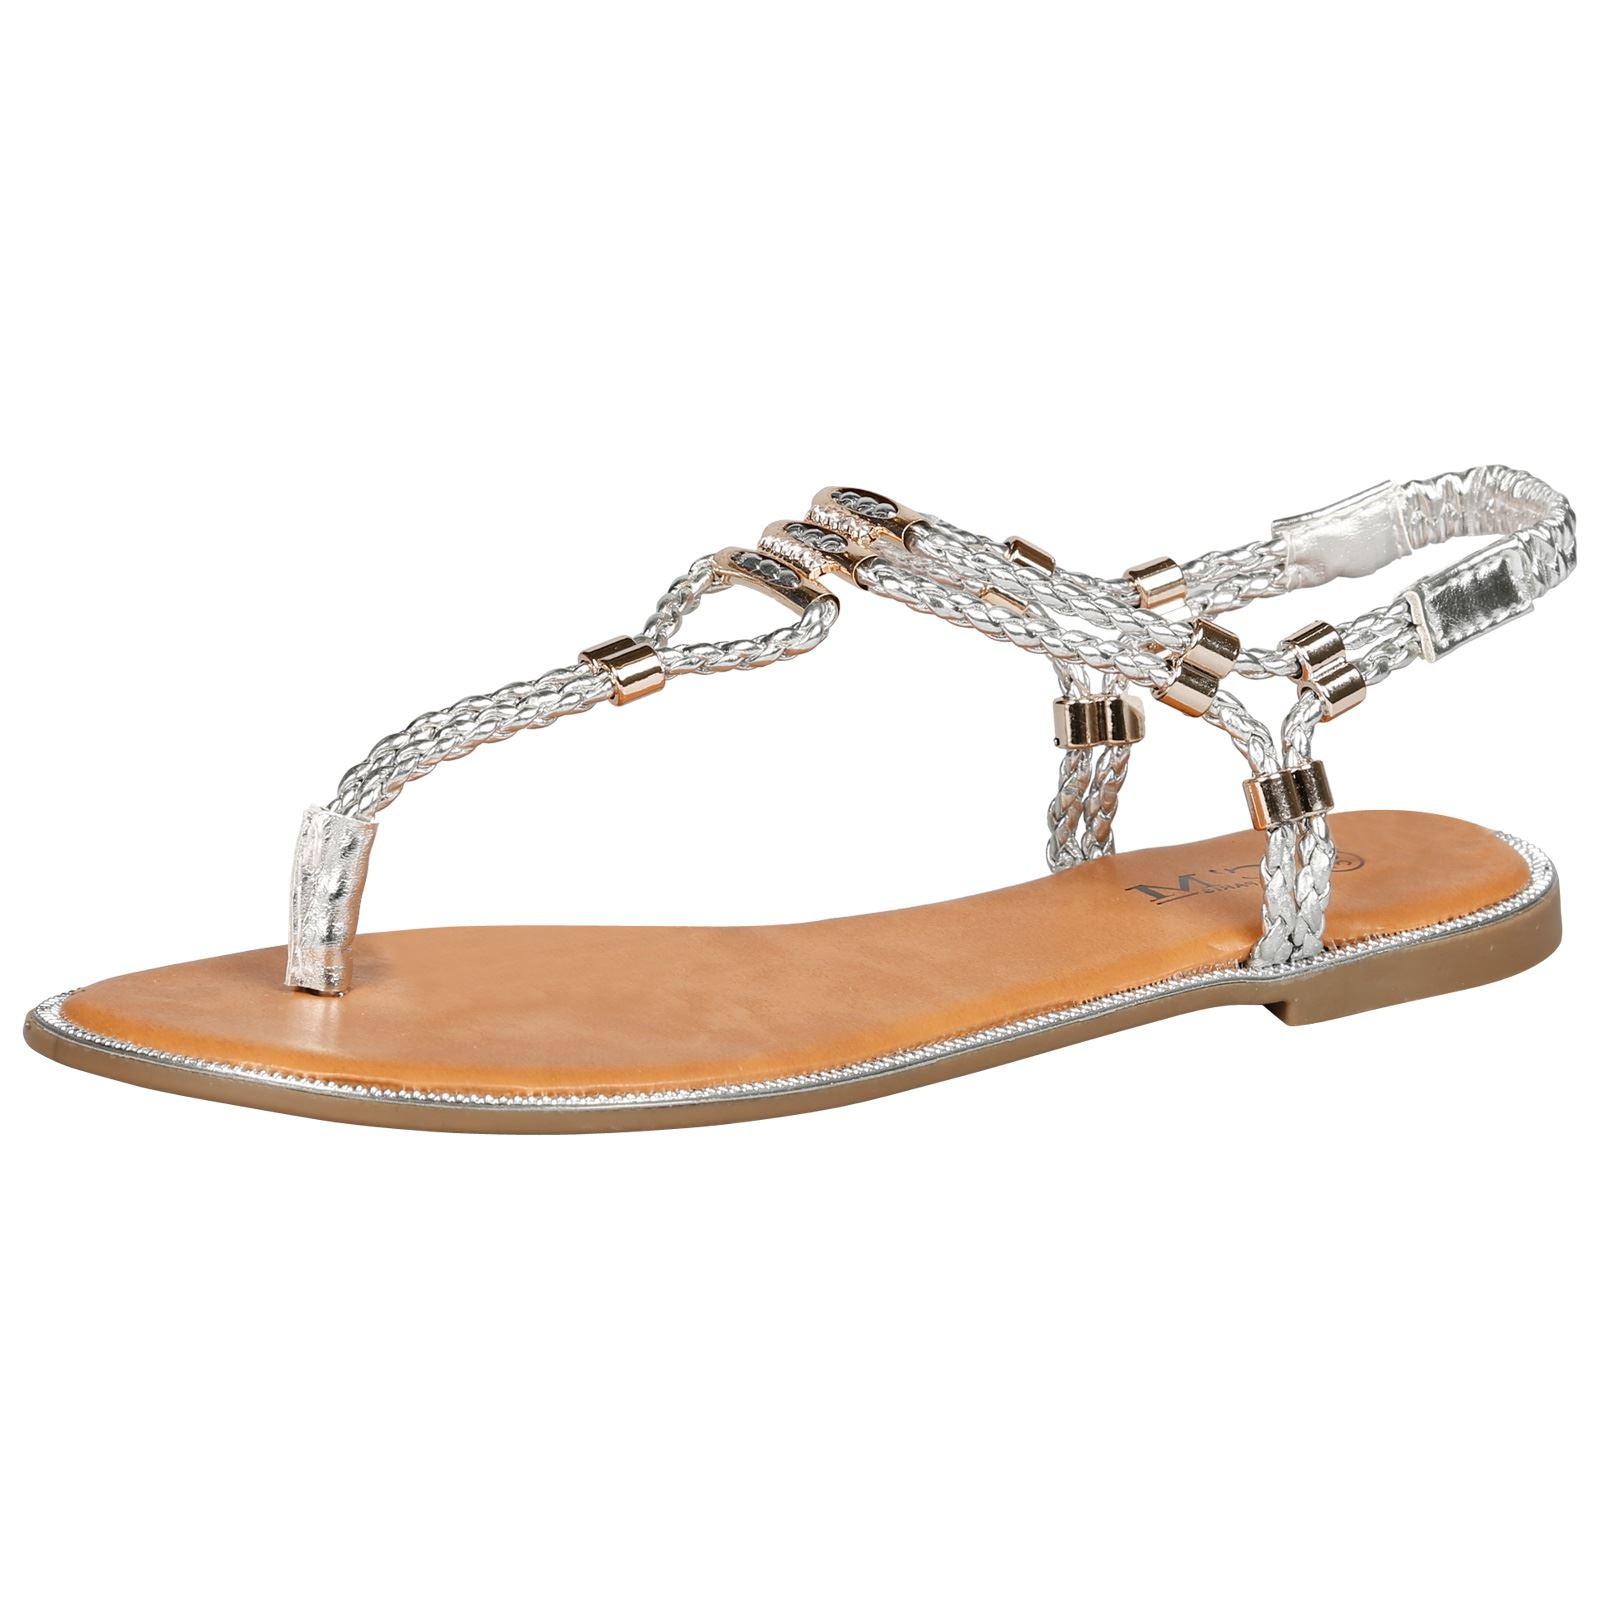 Rosielee Braided Sandals in Silver